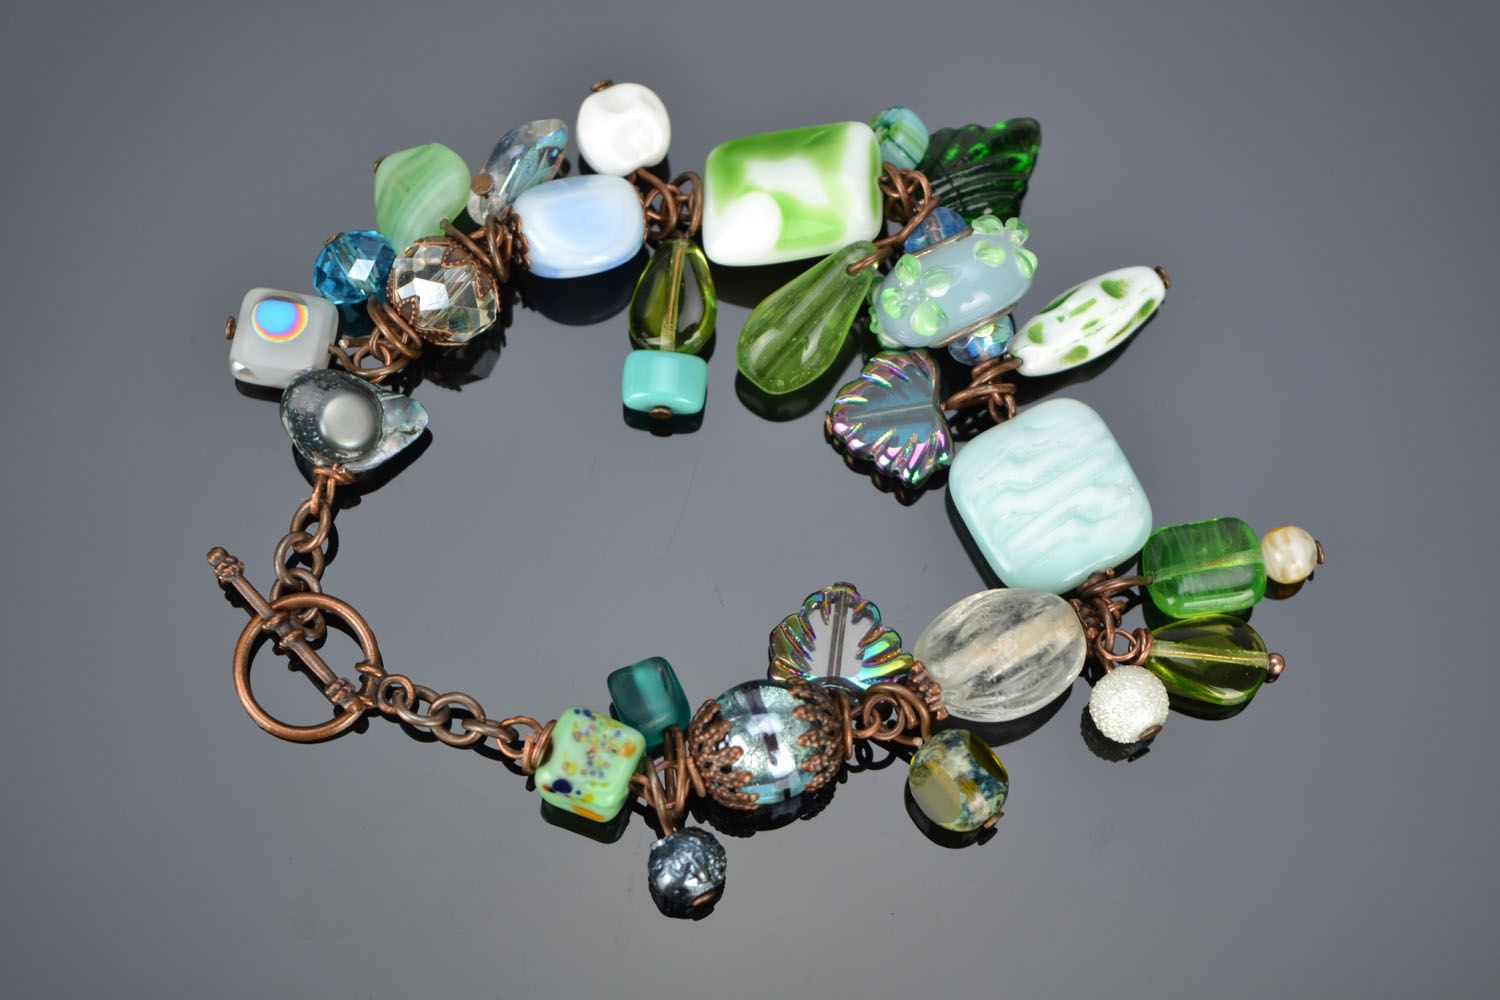 Bracelet with charms photo 2